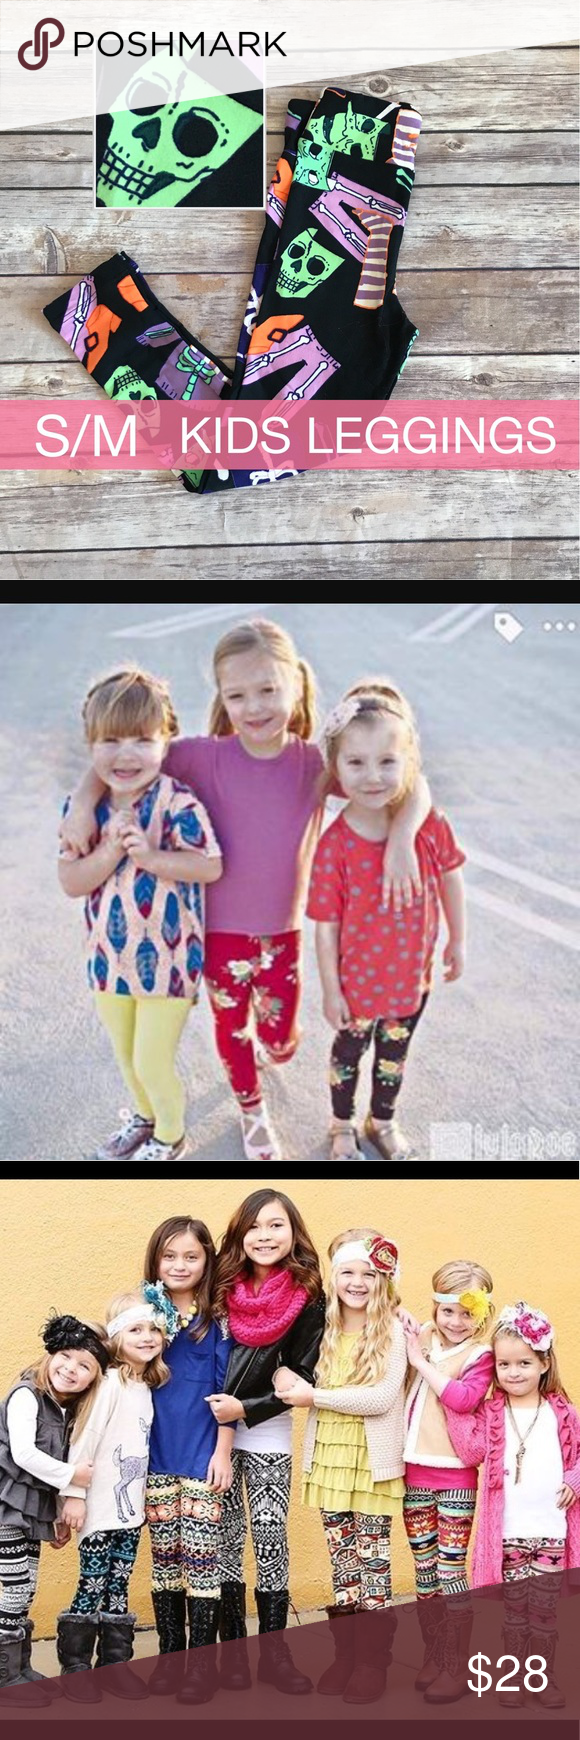 HALLOWEEN🎃NWT 2017 RARE LuLaRoe Kids S/M Leggings 🎃NEW HALLOWEEN 2017!!! 🎃NWT RARE UNICORN LuLaRoe Kids' Small/Medium Size. Black with skeletons design. LuLaRoe carefully designs each print for these fun print kids' Leggings to be as unique and bright as possible. ... They are produced in both fun print Leggings and solid Leggings styles. Machine Washable!   Not a consultant, just a LuLaRoe Lover!          SIZING: average sized girls 2-8 LuLaRoe Bottoms Leggings